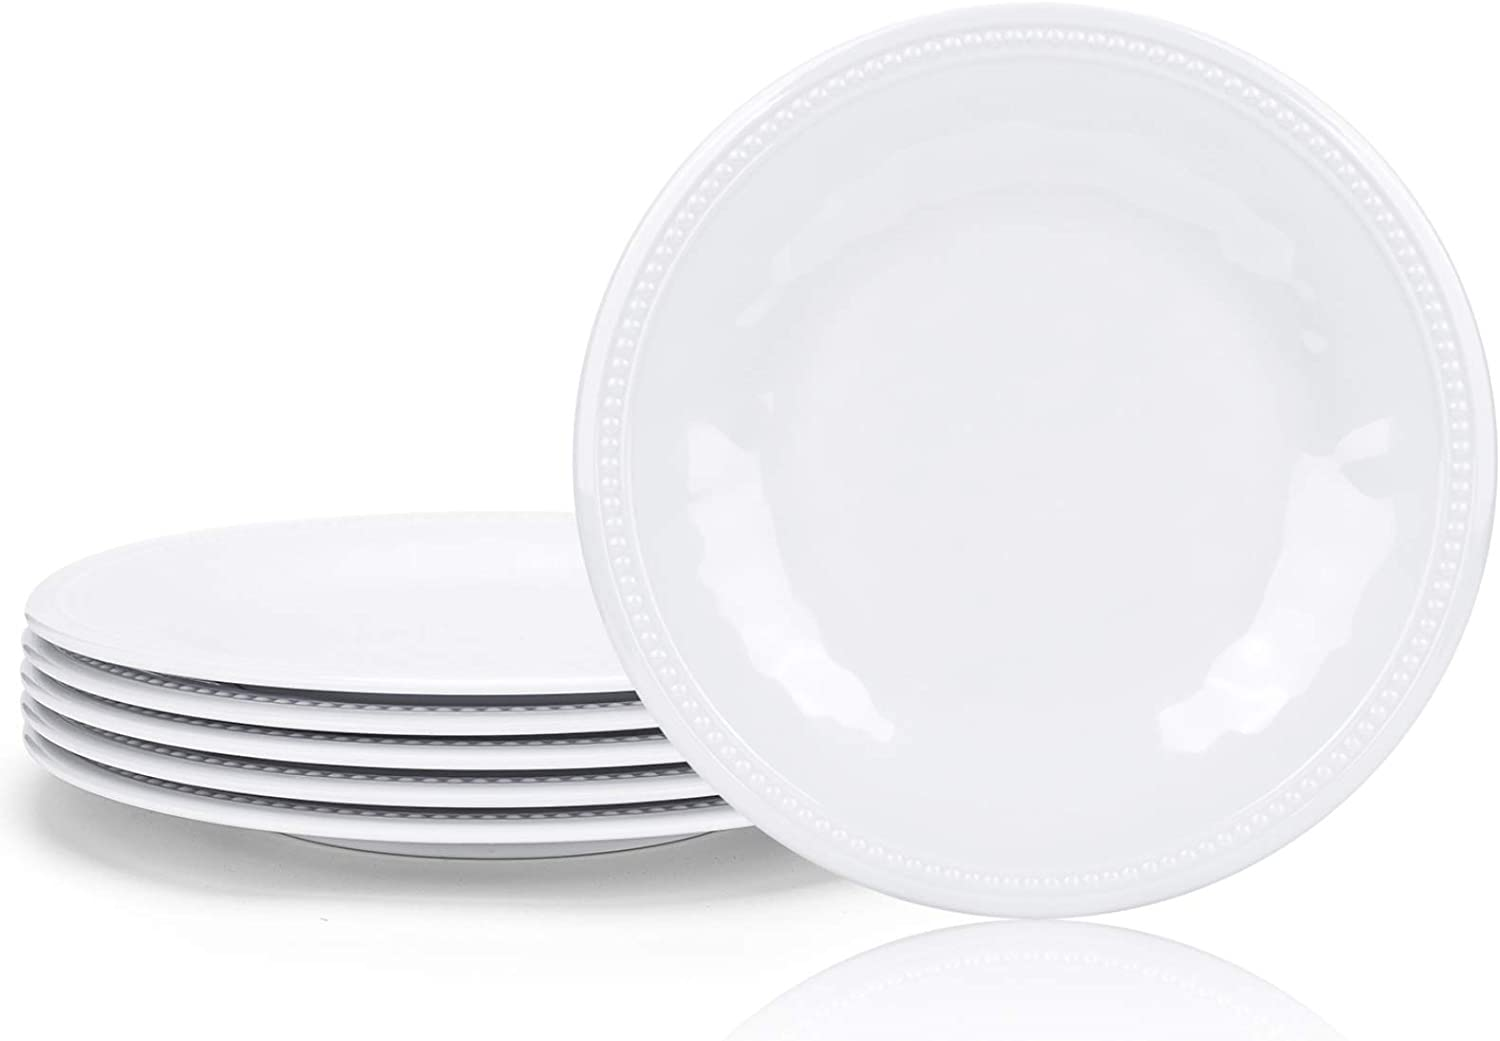 Melamine Plates set of 6, 11-inches Dinner Plates Set for Indoor and Outdoor Use, White